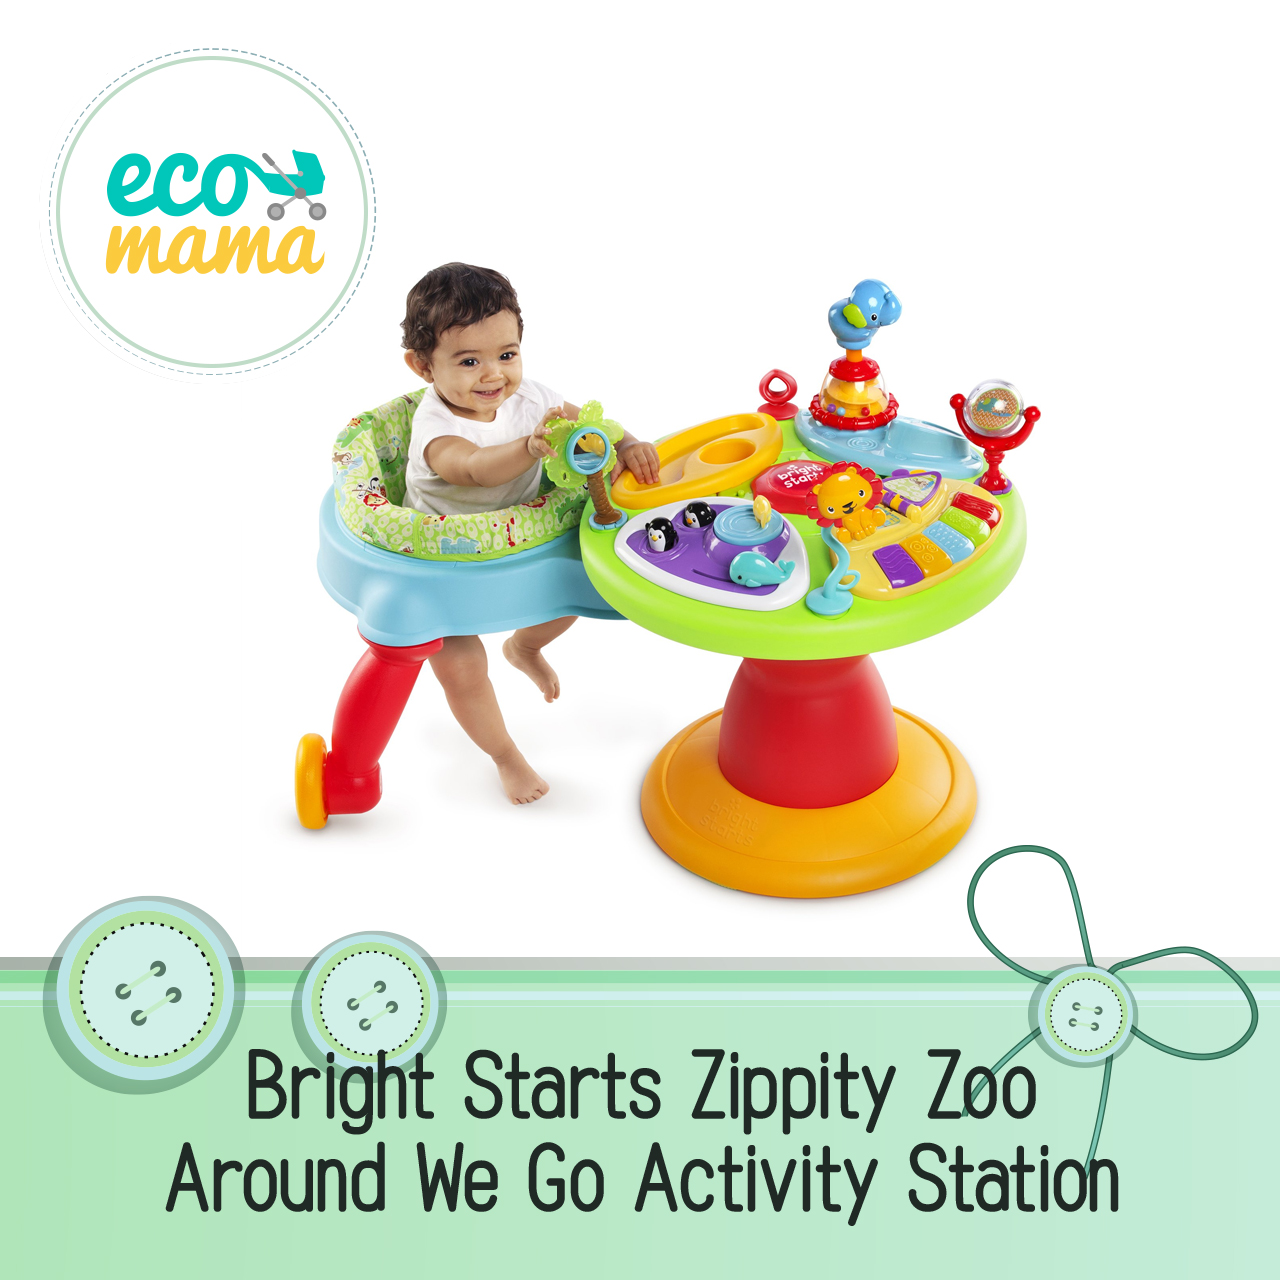 Bright Starts Zippity Zoo Around We Go